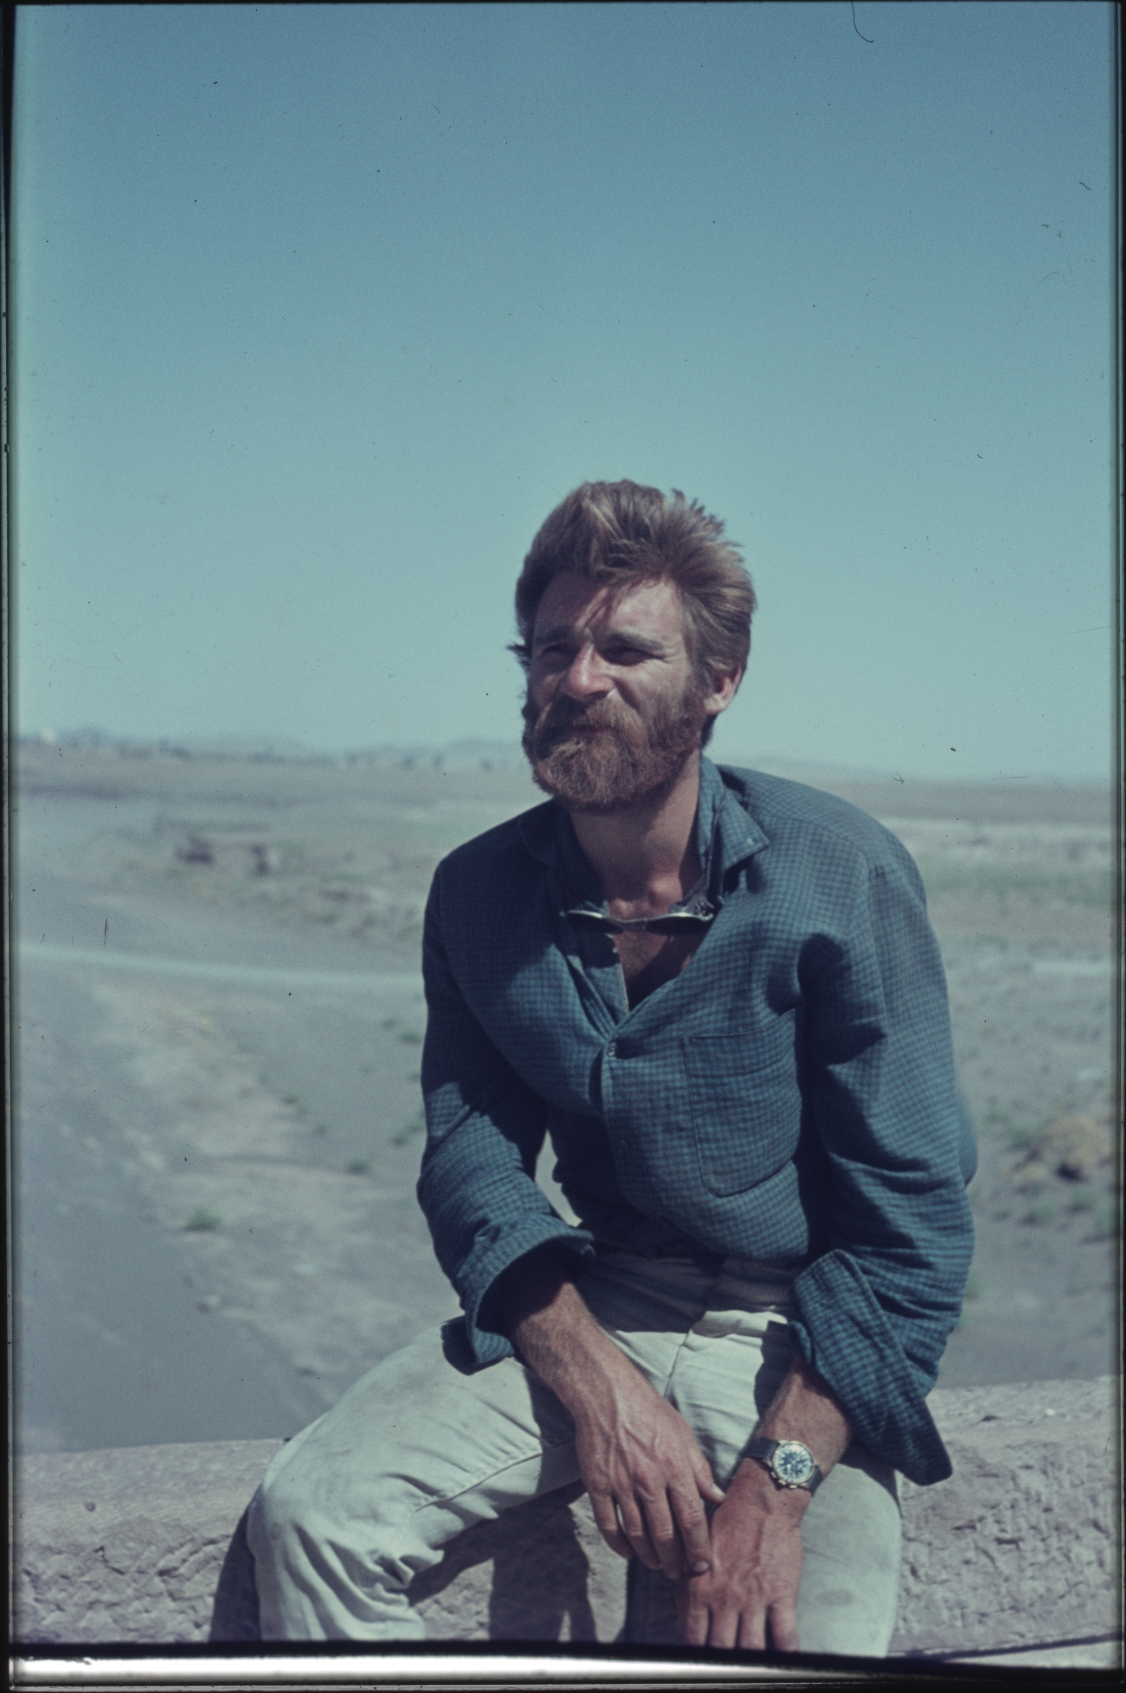 Jean in Afghanistan. Photo: Daniella Bourgeois, 1968